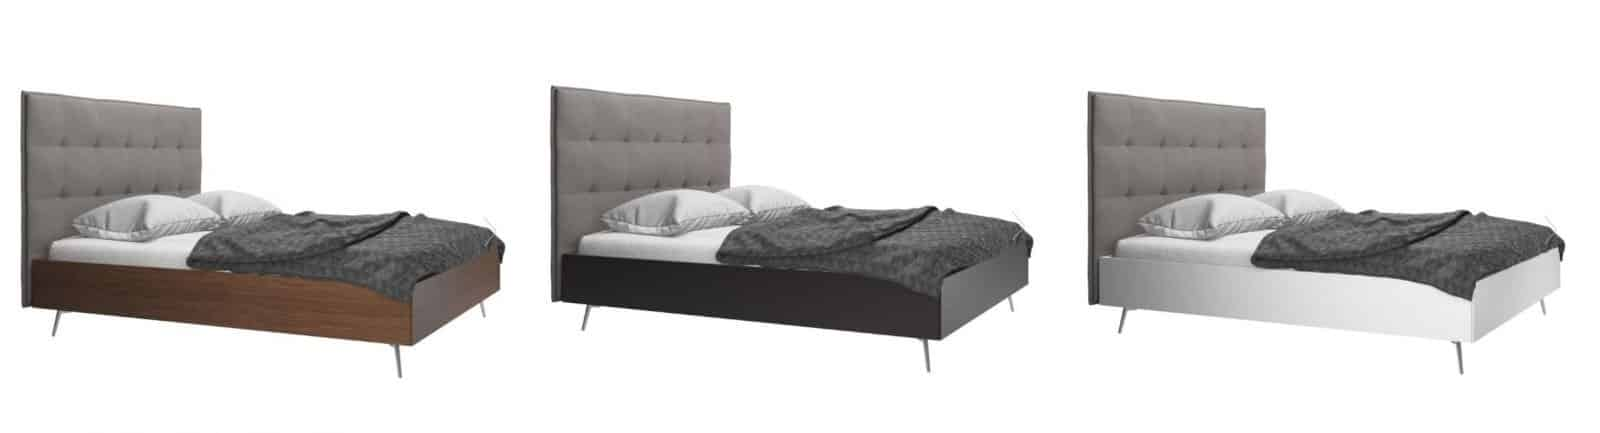 lugano design bett by boconcept boconcept experience hamburg am fischmarkt. Black Bedroom Furniture Sets. Home Design Ideas